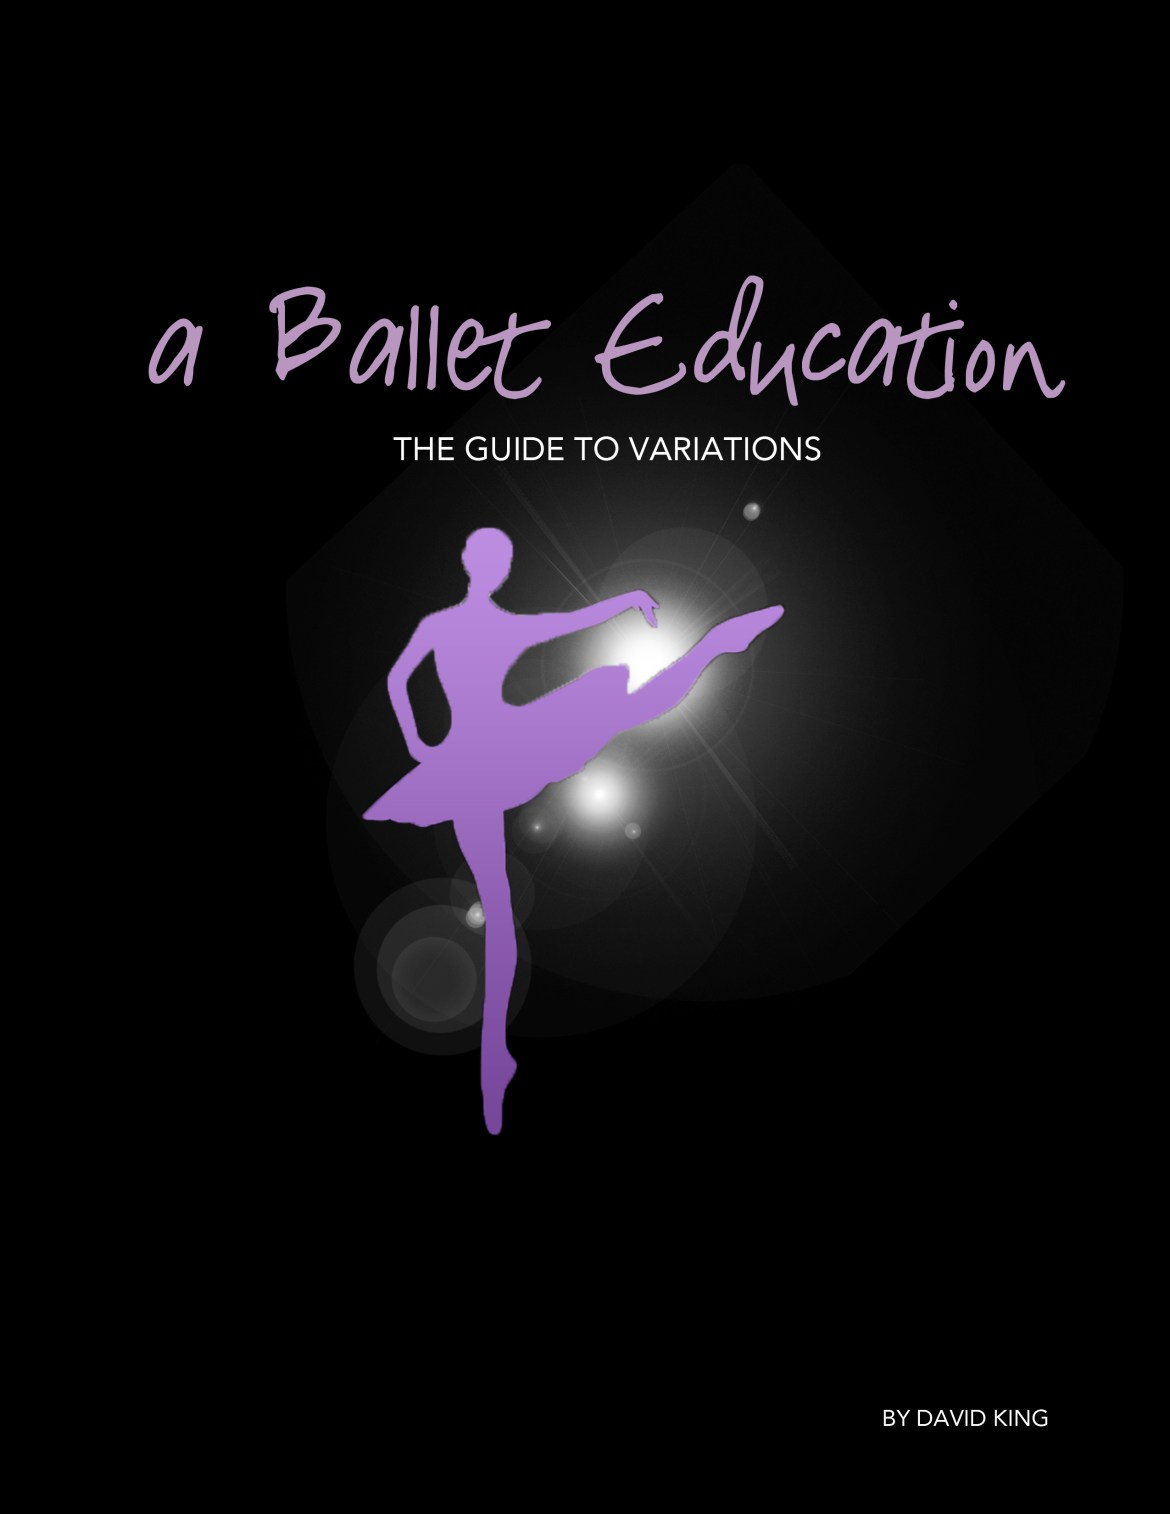 a ballet education cover